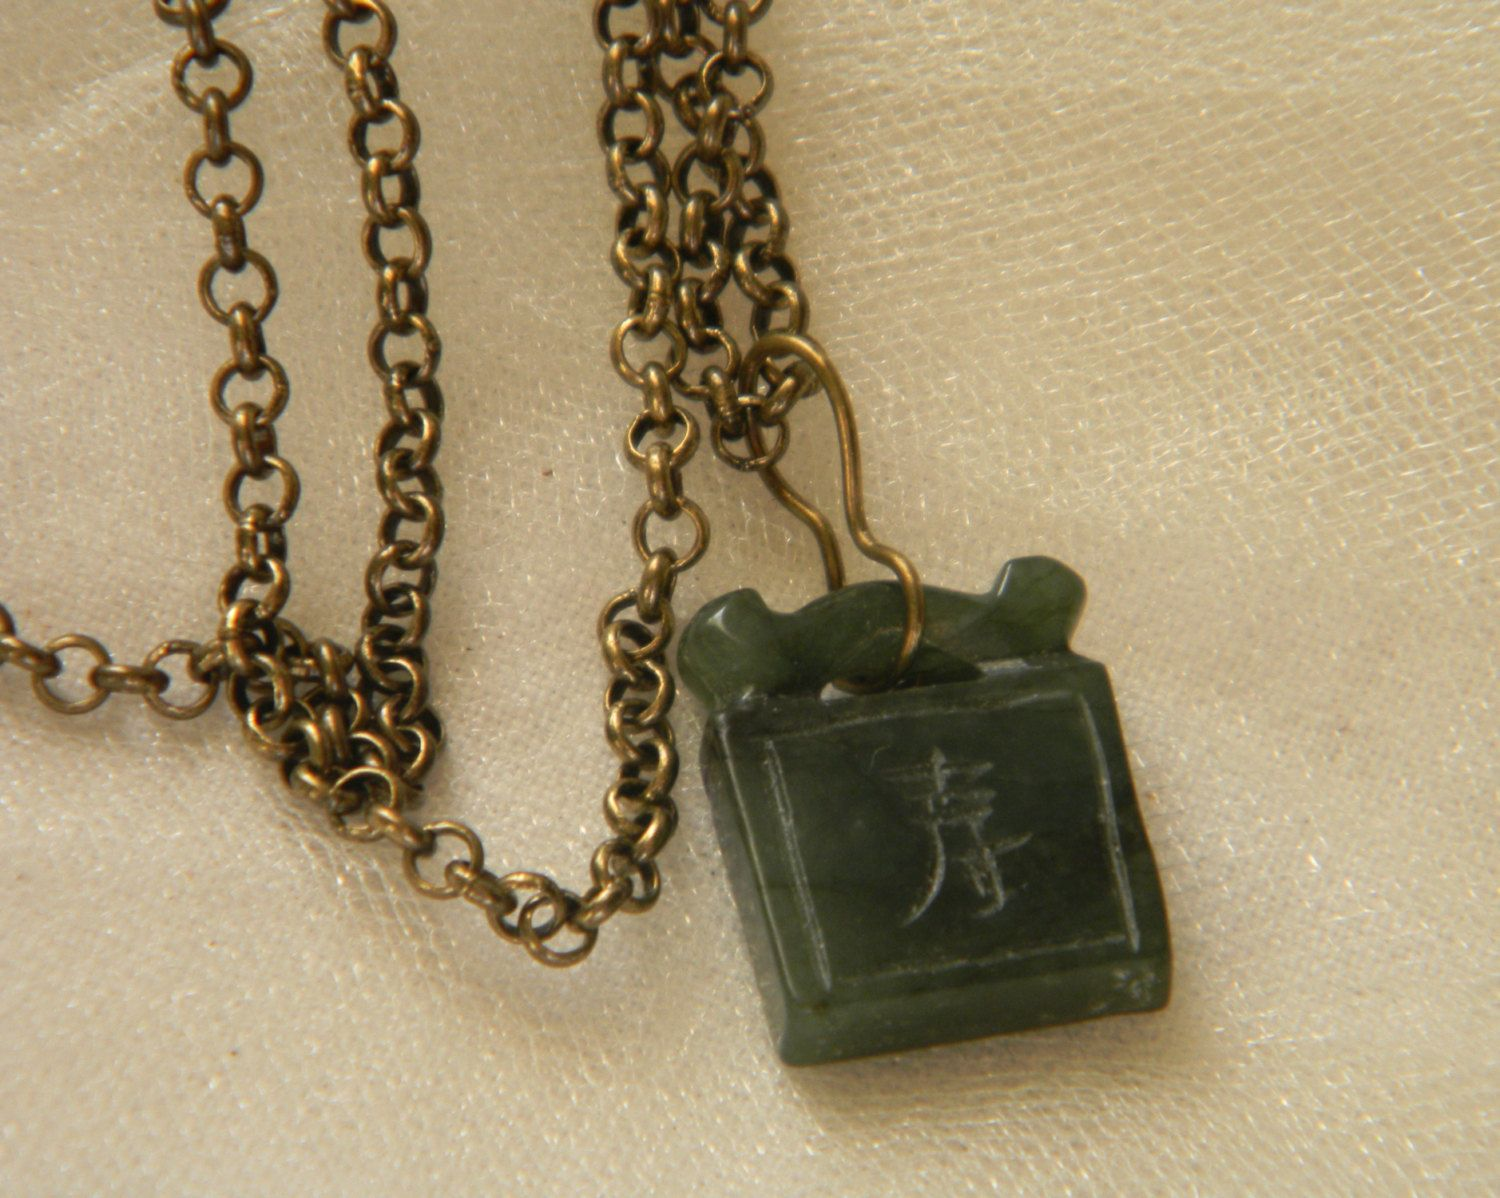 Vintage jade pendant brass chain necklace charm necklace vintage jade pendant brass chain necklace charm necklace chinese jade pendant jade jewelry layering necklace delicate green jade aloadofball Gallery